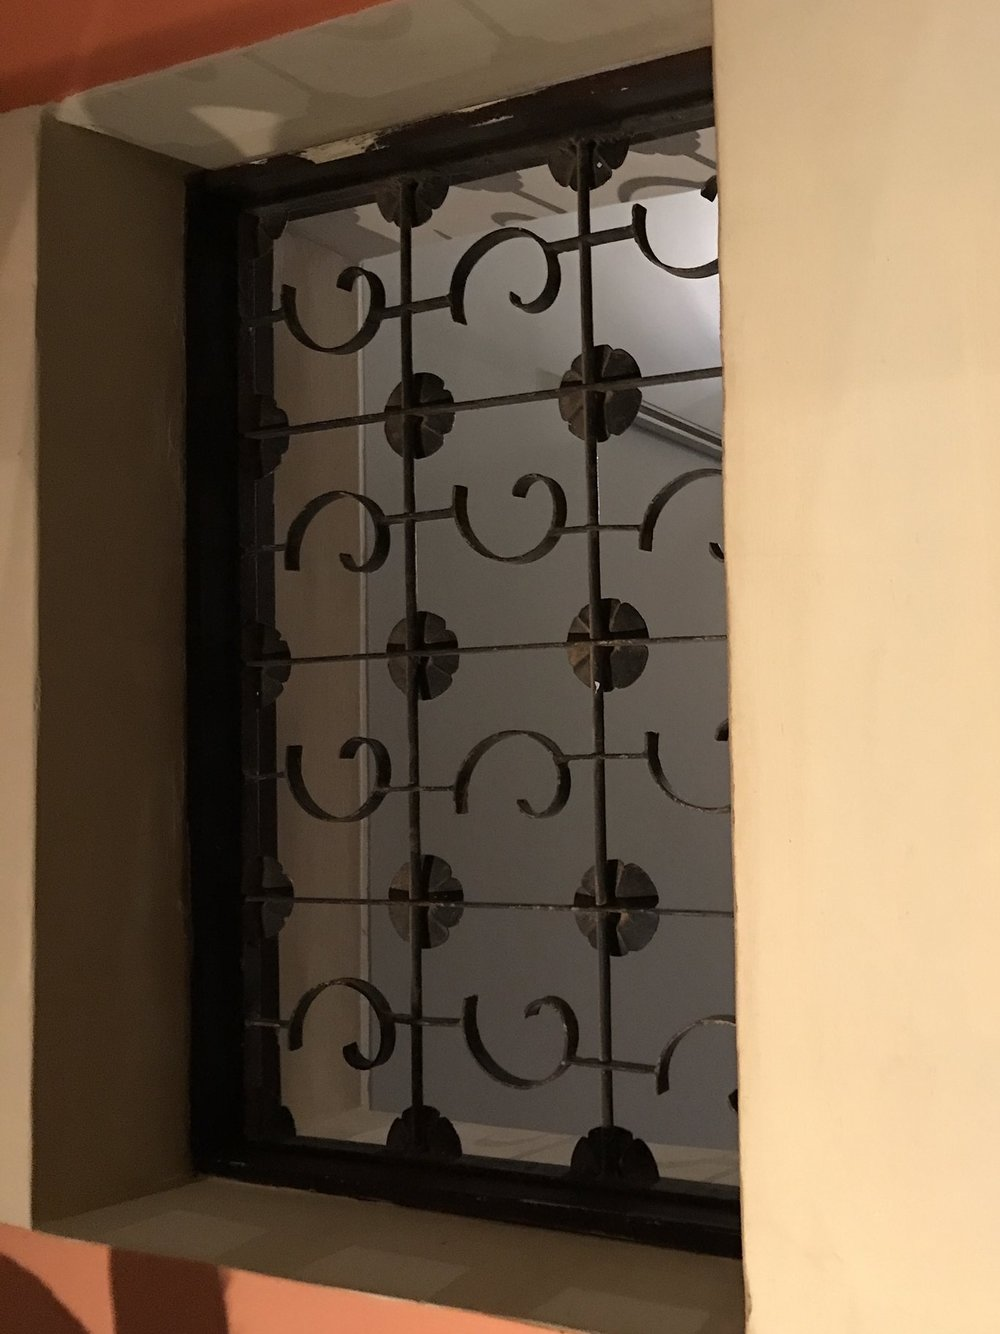 4) Decorative grate in animal gallery